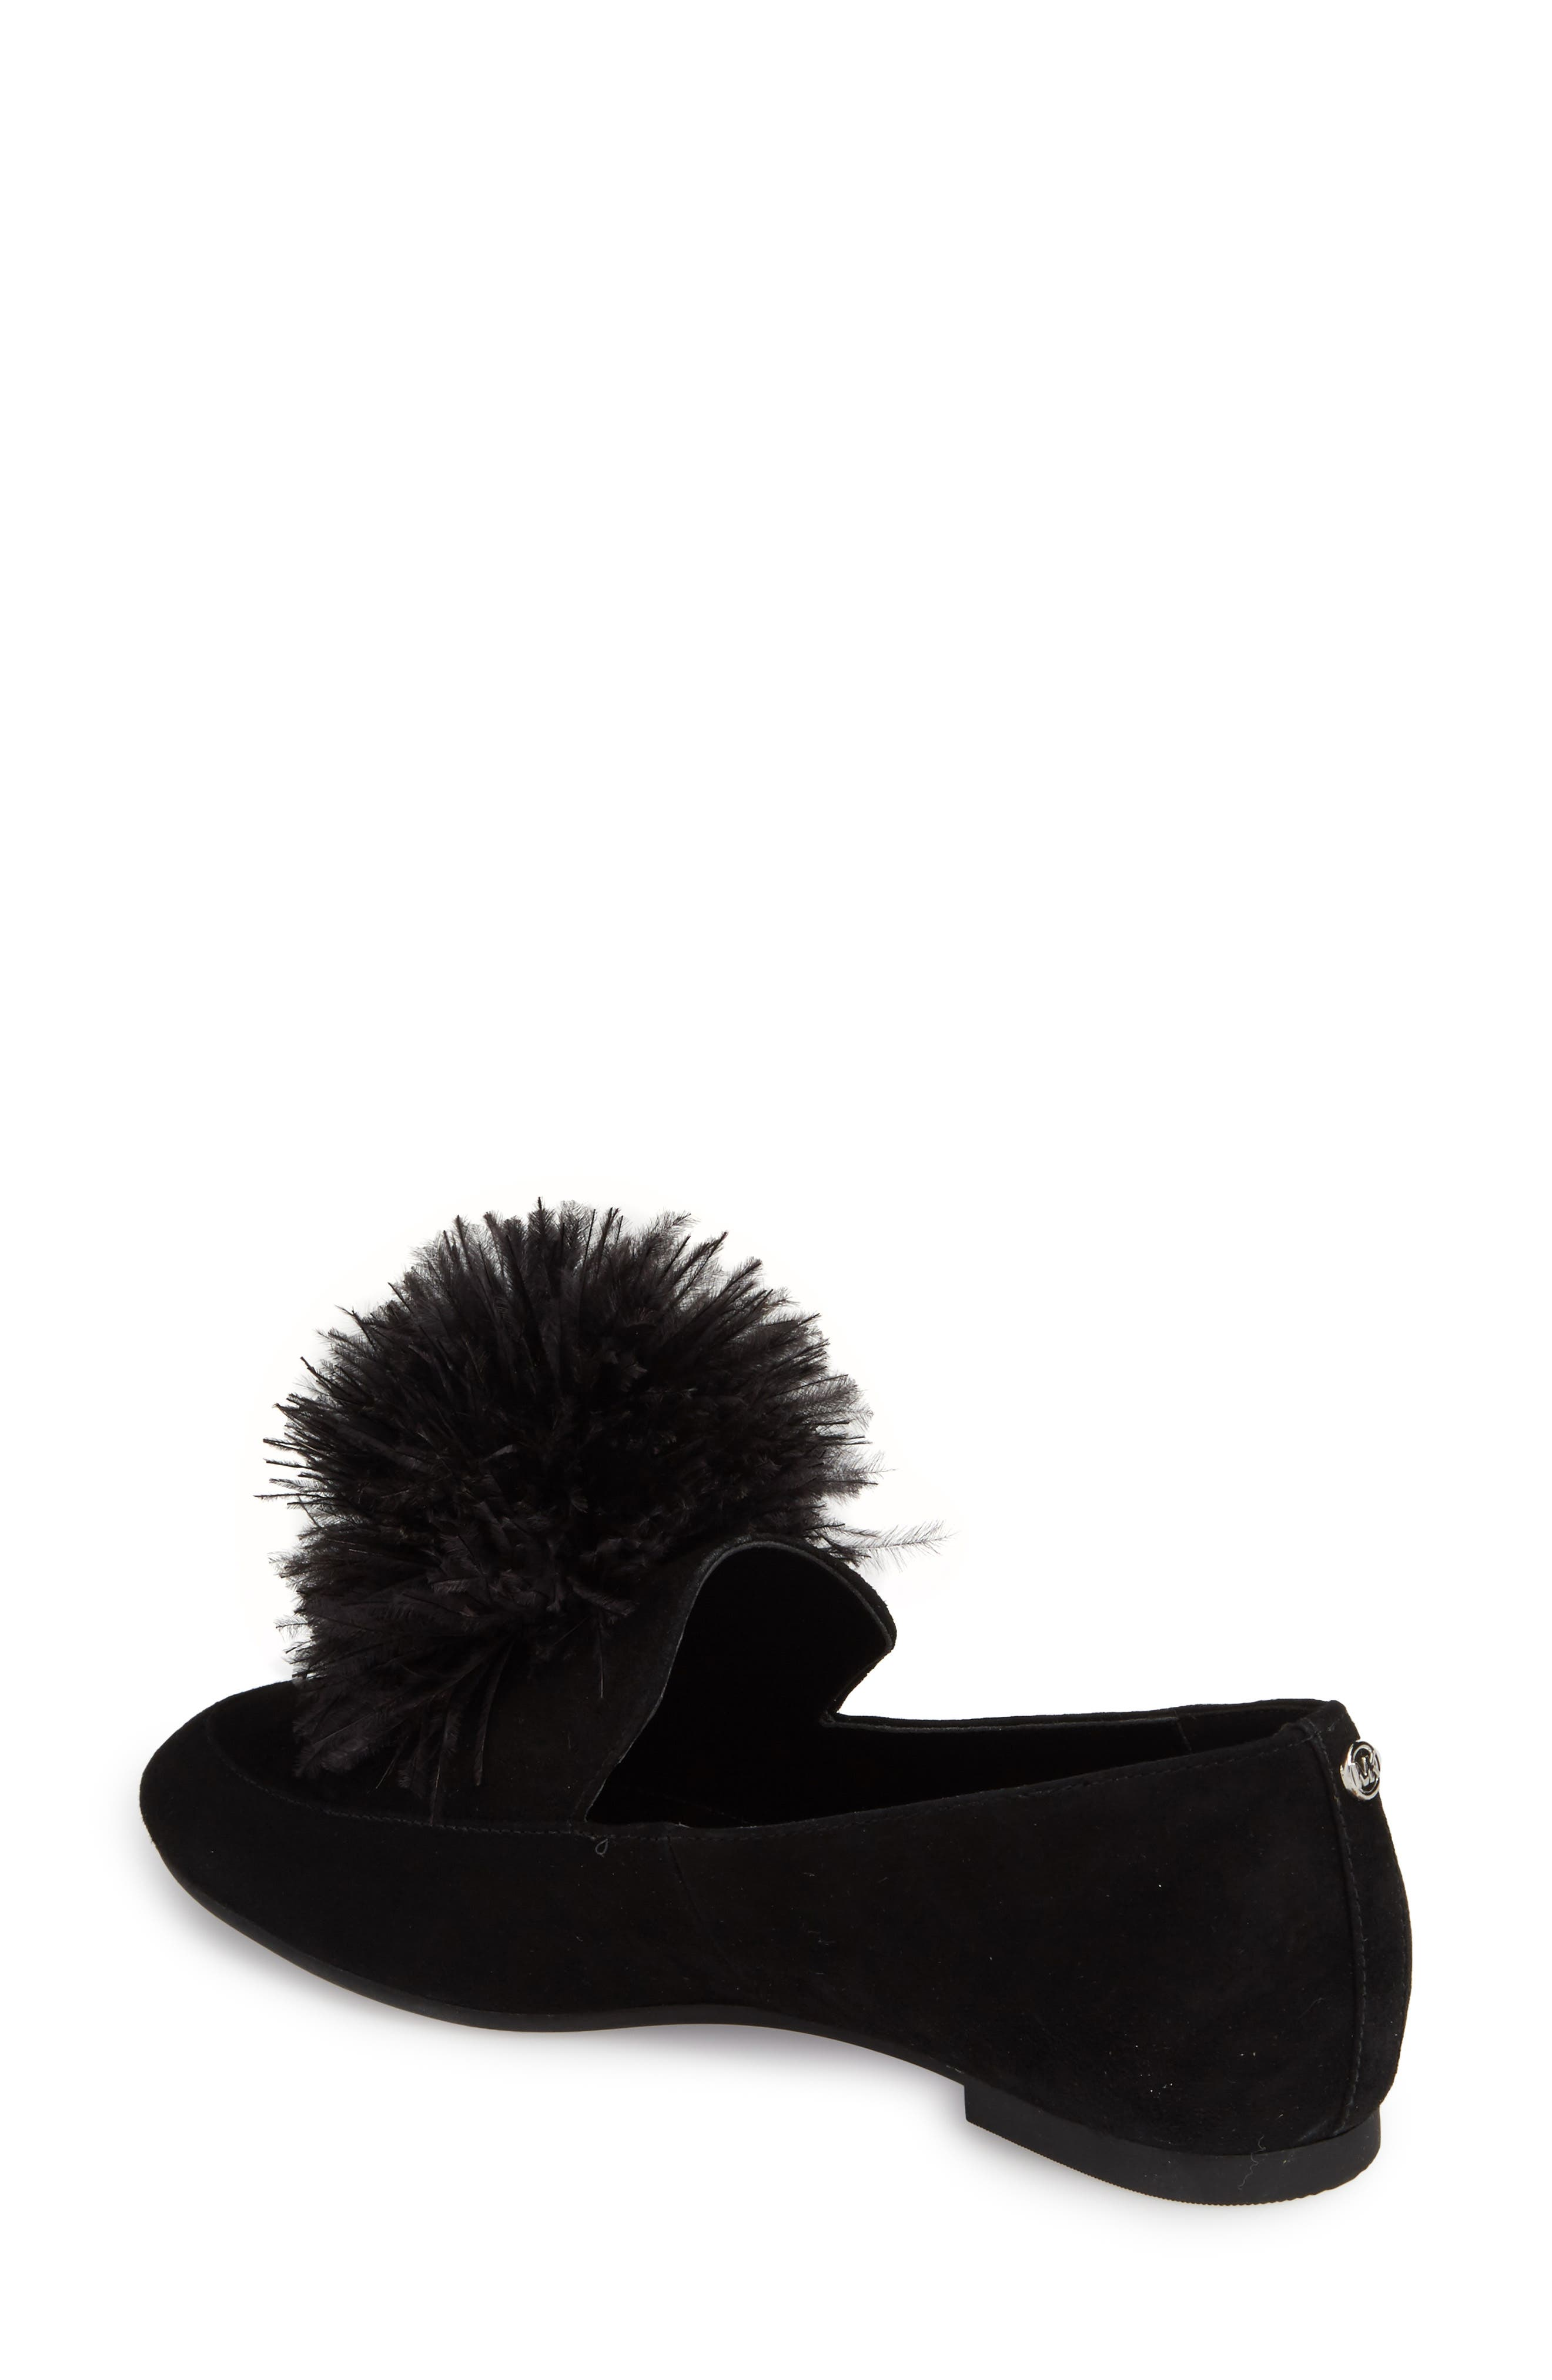 Fara Feather Pom Loafer,                             Alternate thumbnail 3, color,